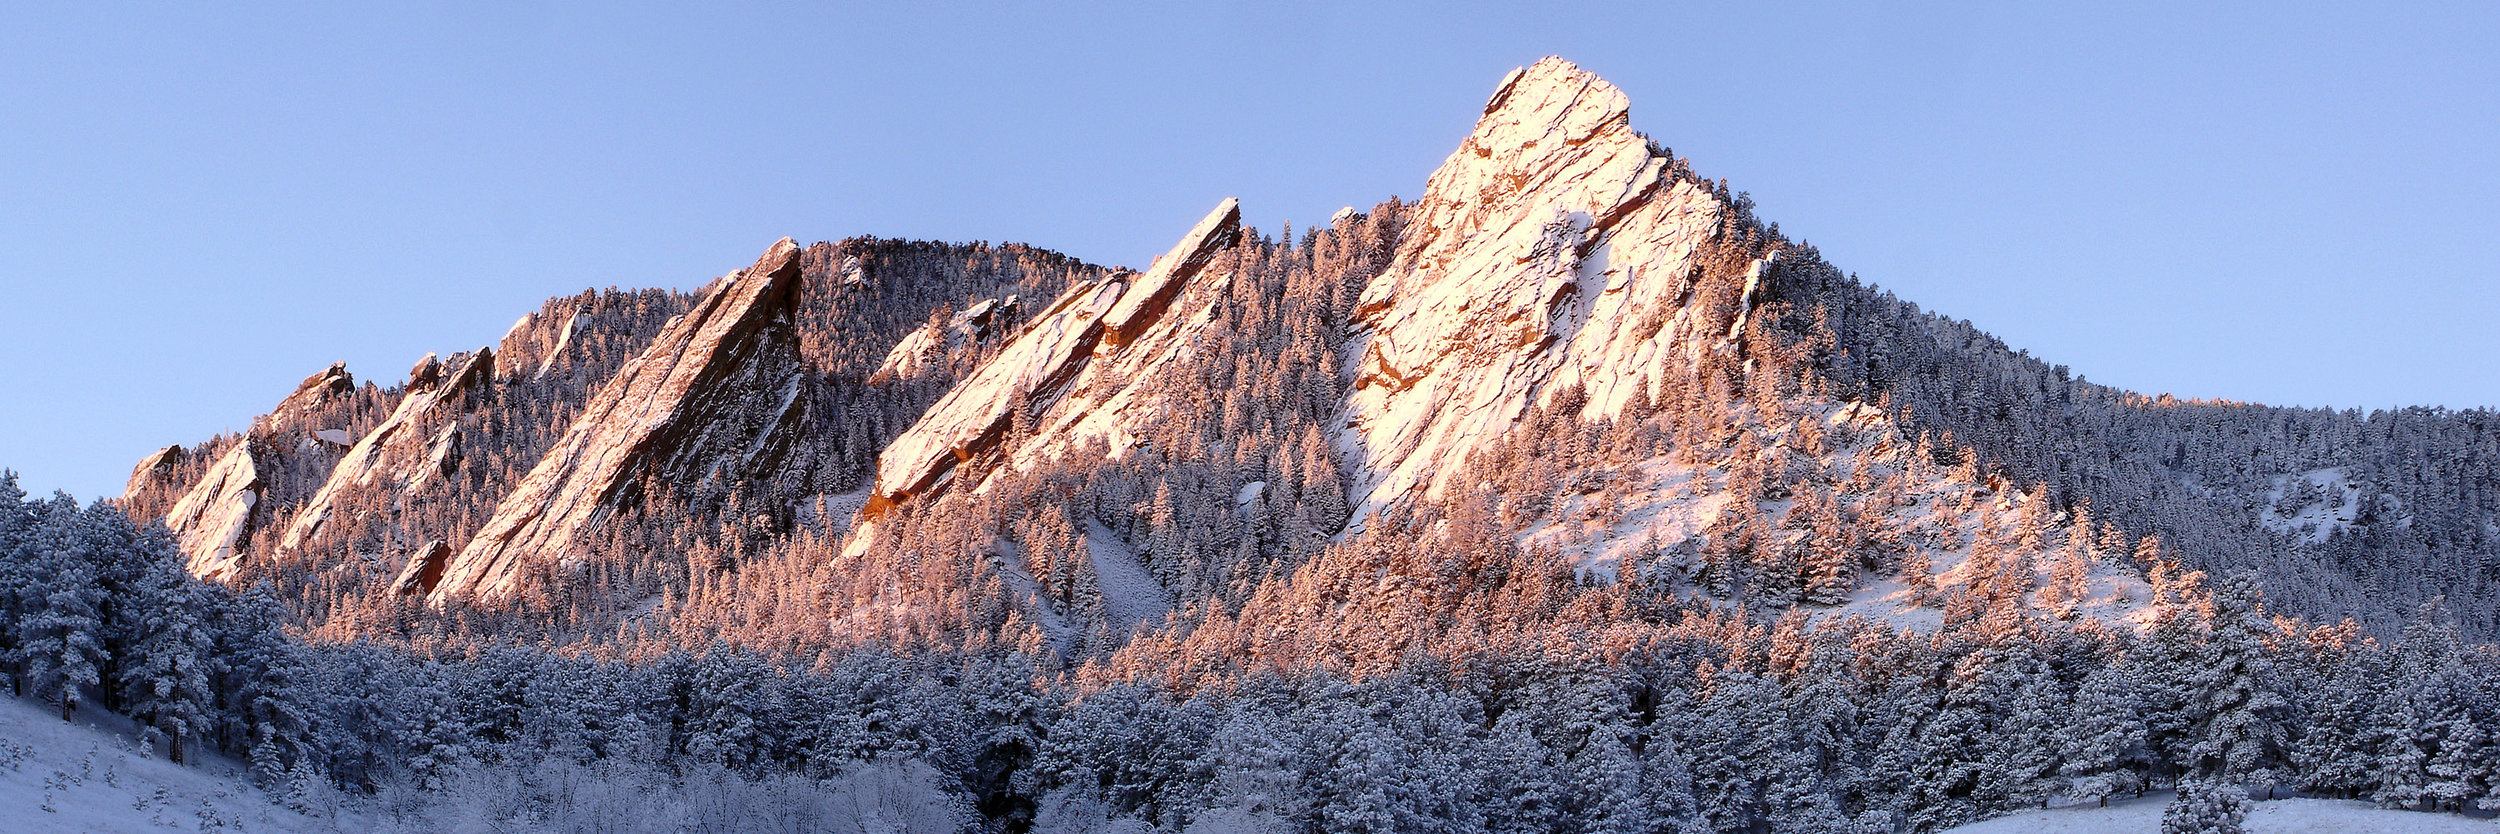 Honeymoon Hotspot: Boulder, Colorado